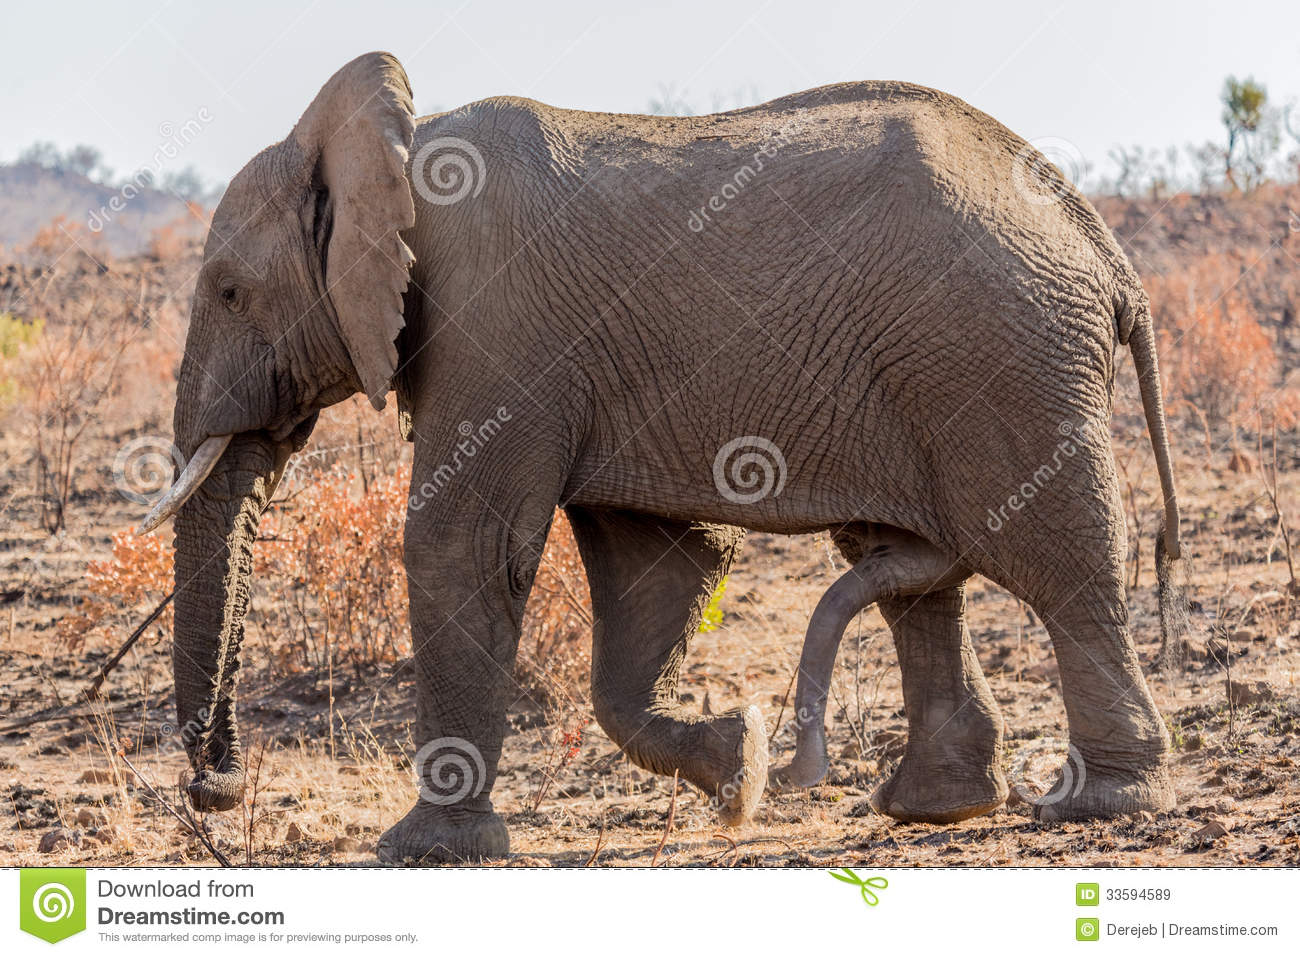 giant male elephant walking in the grass lands of South Africa's ...